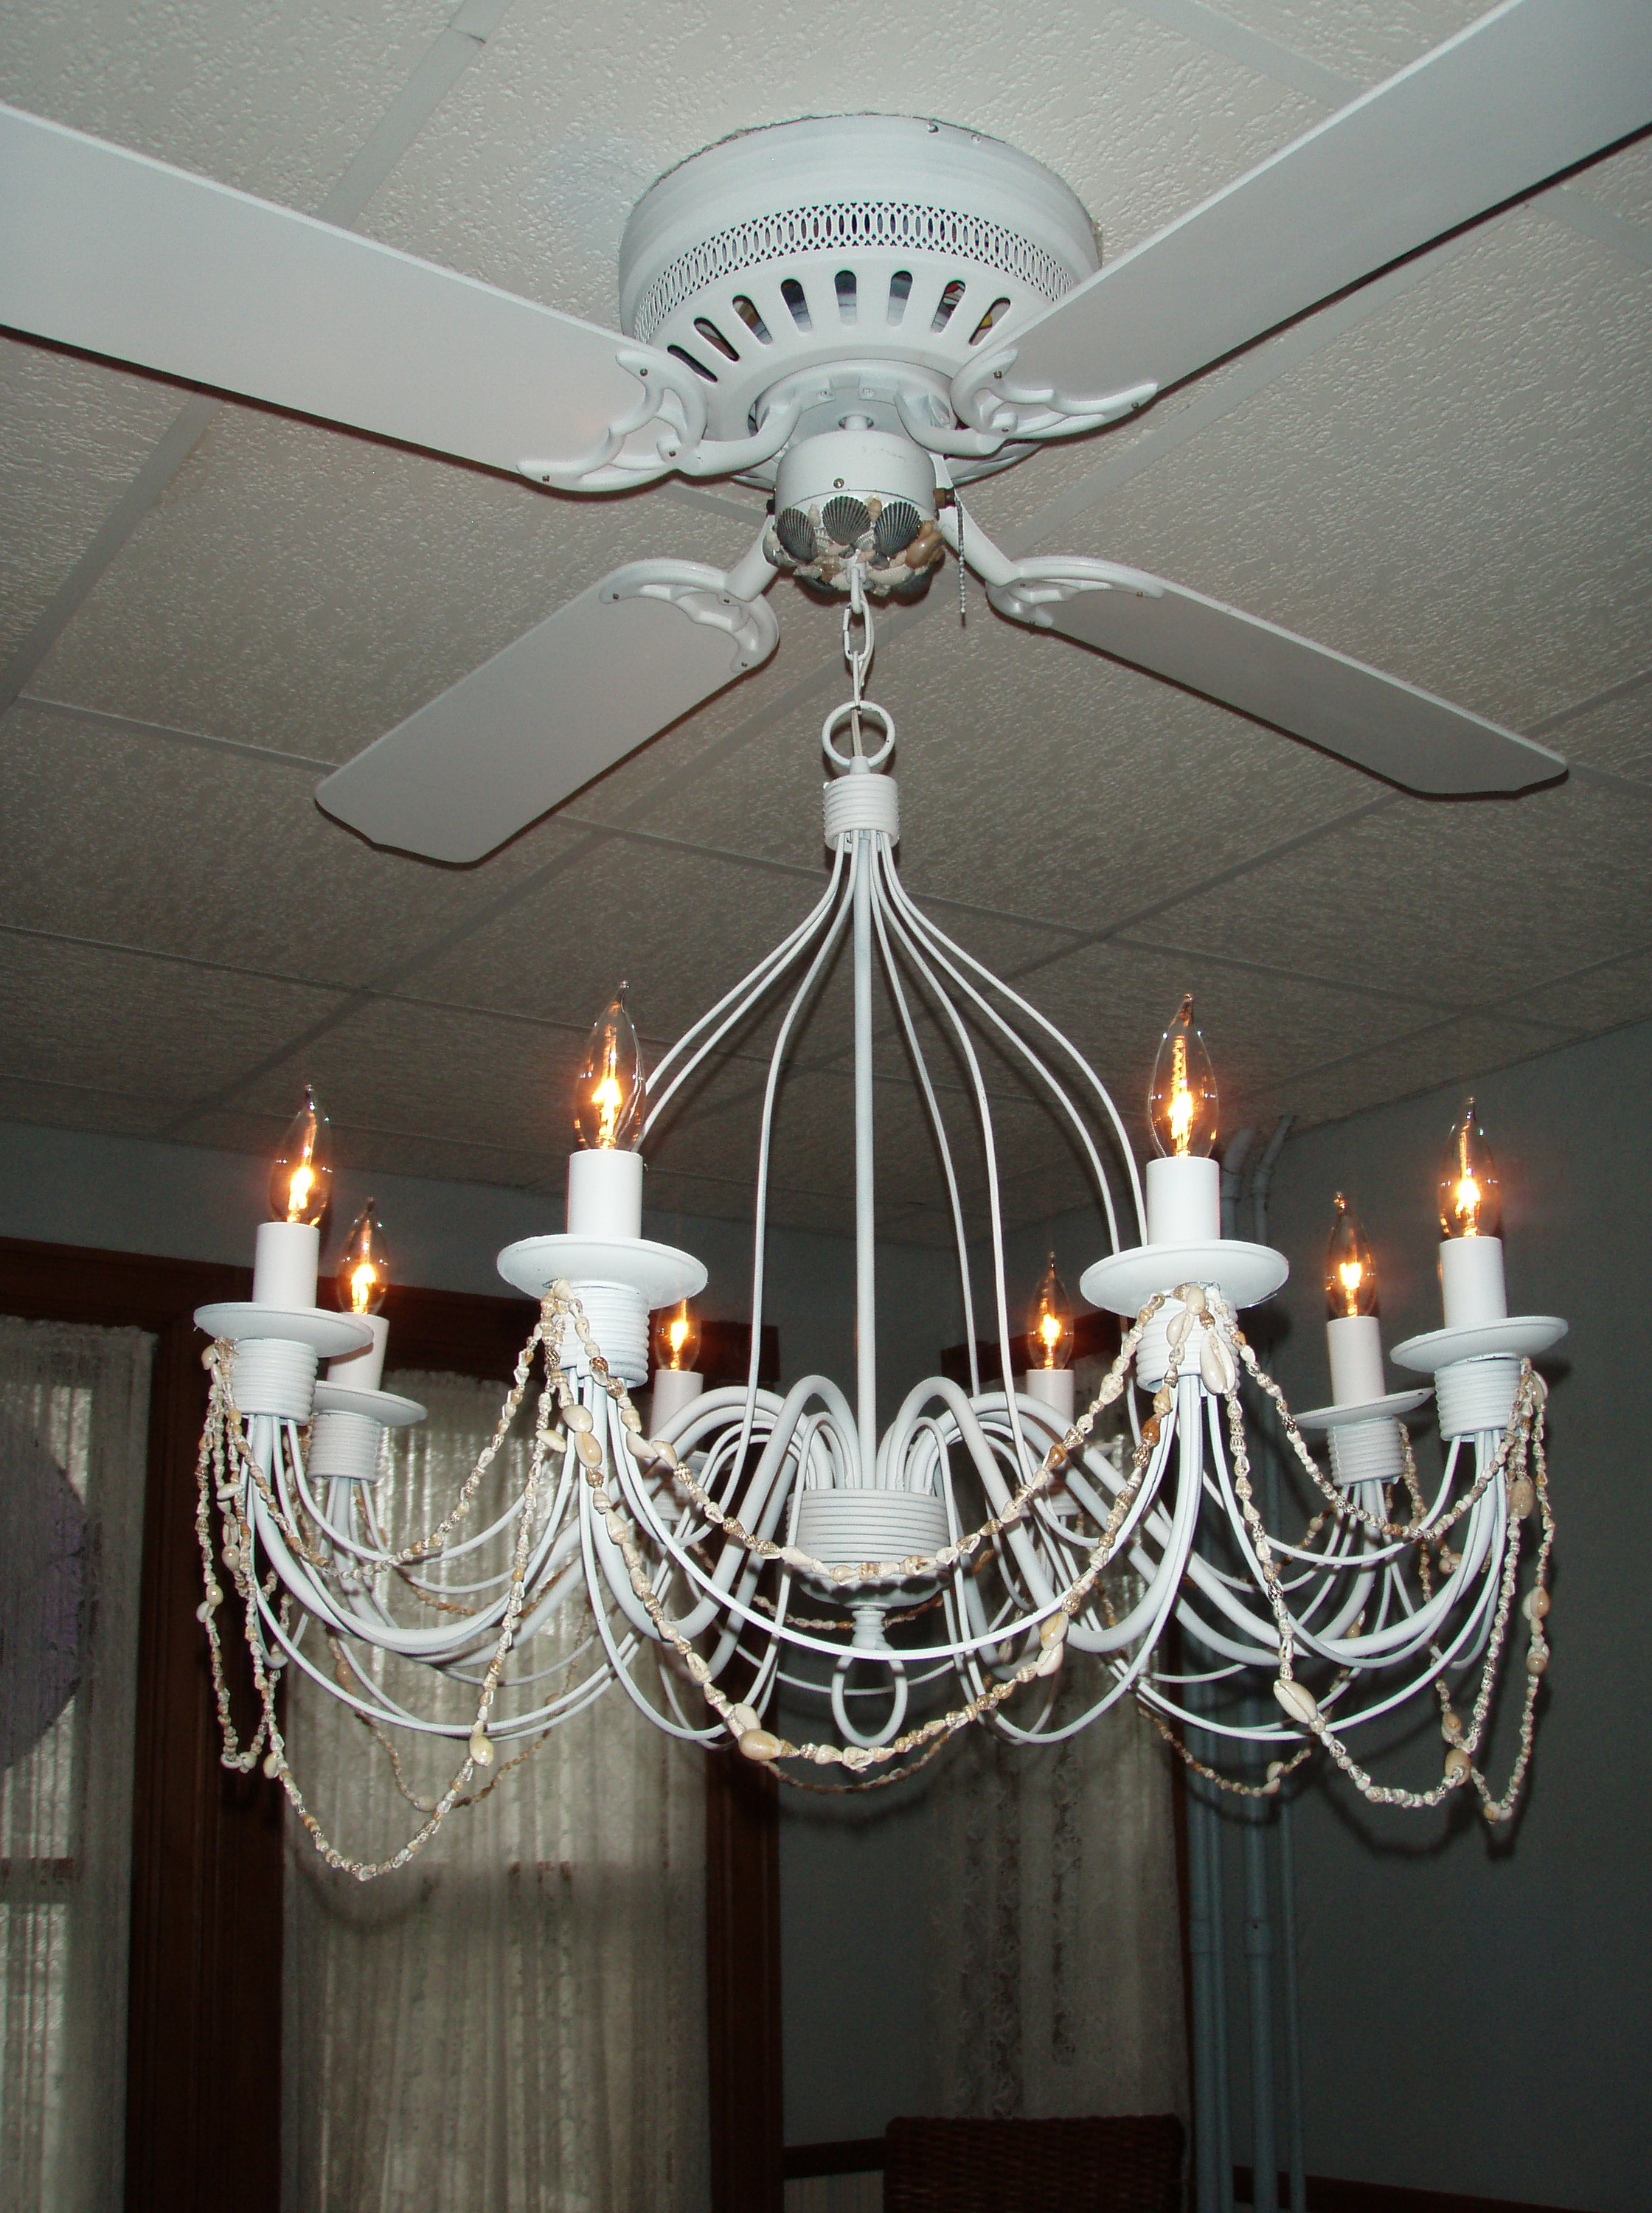 Ceiling fans with chandelier light kit home design ideas - Girl ceiling fans with chandelier ...